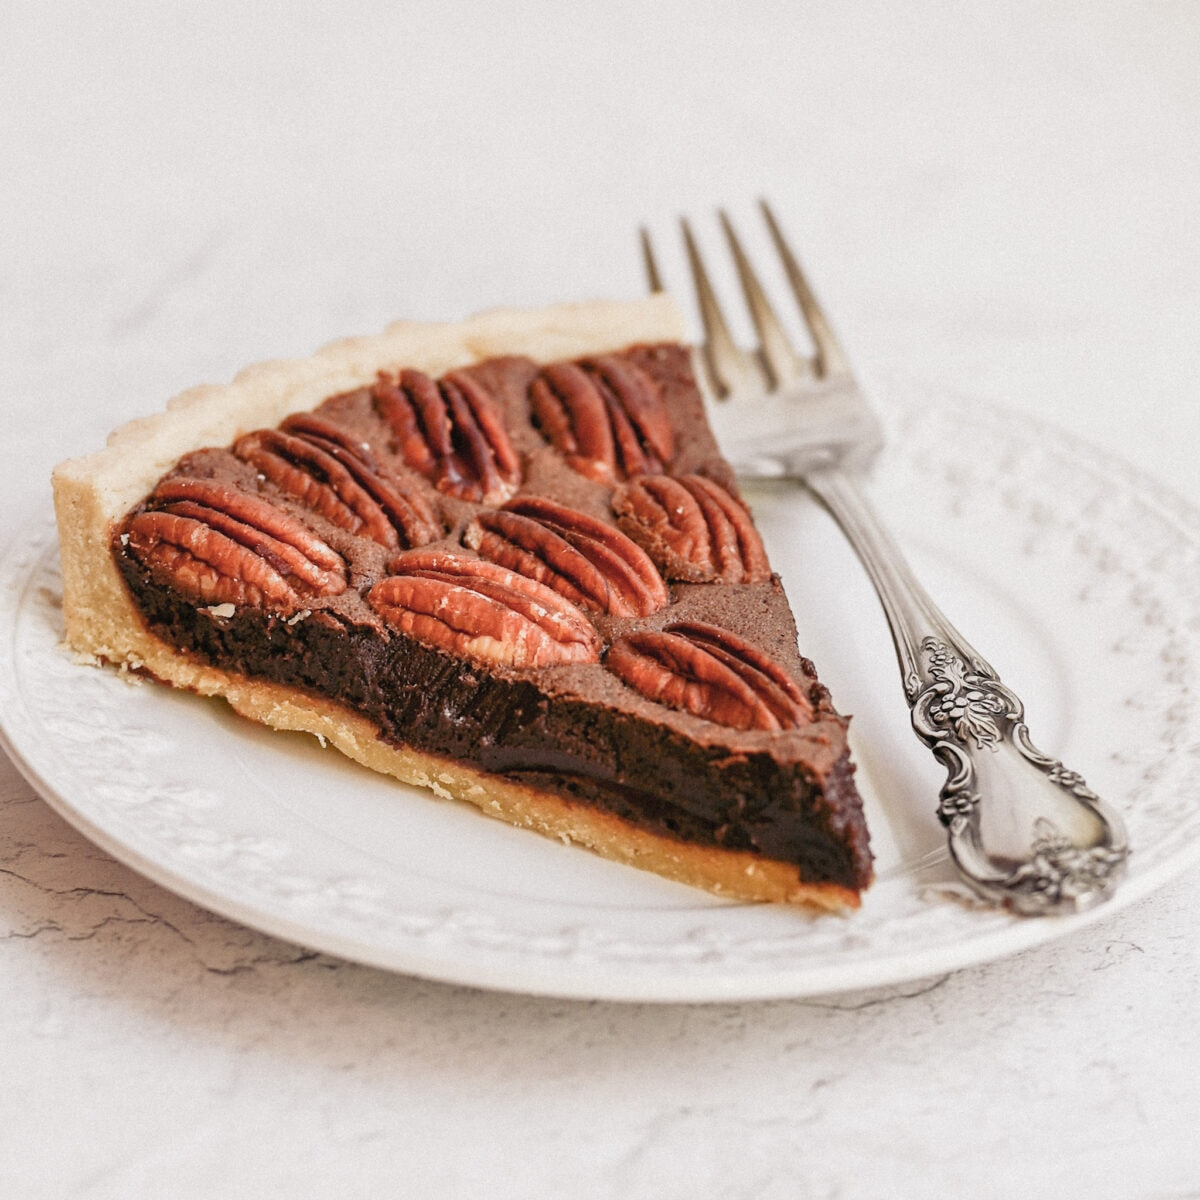 close up shot of a slice of chocolate pecan tart, on a white decorative plate with a silver fork